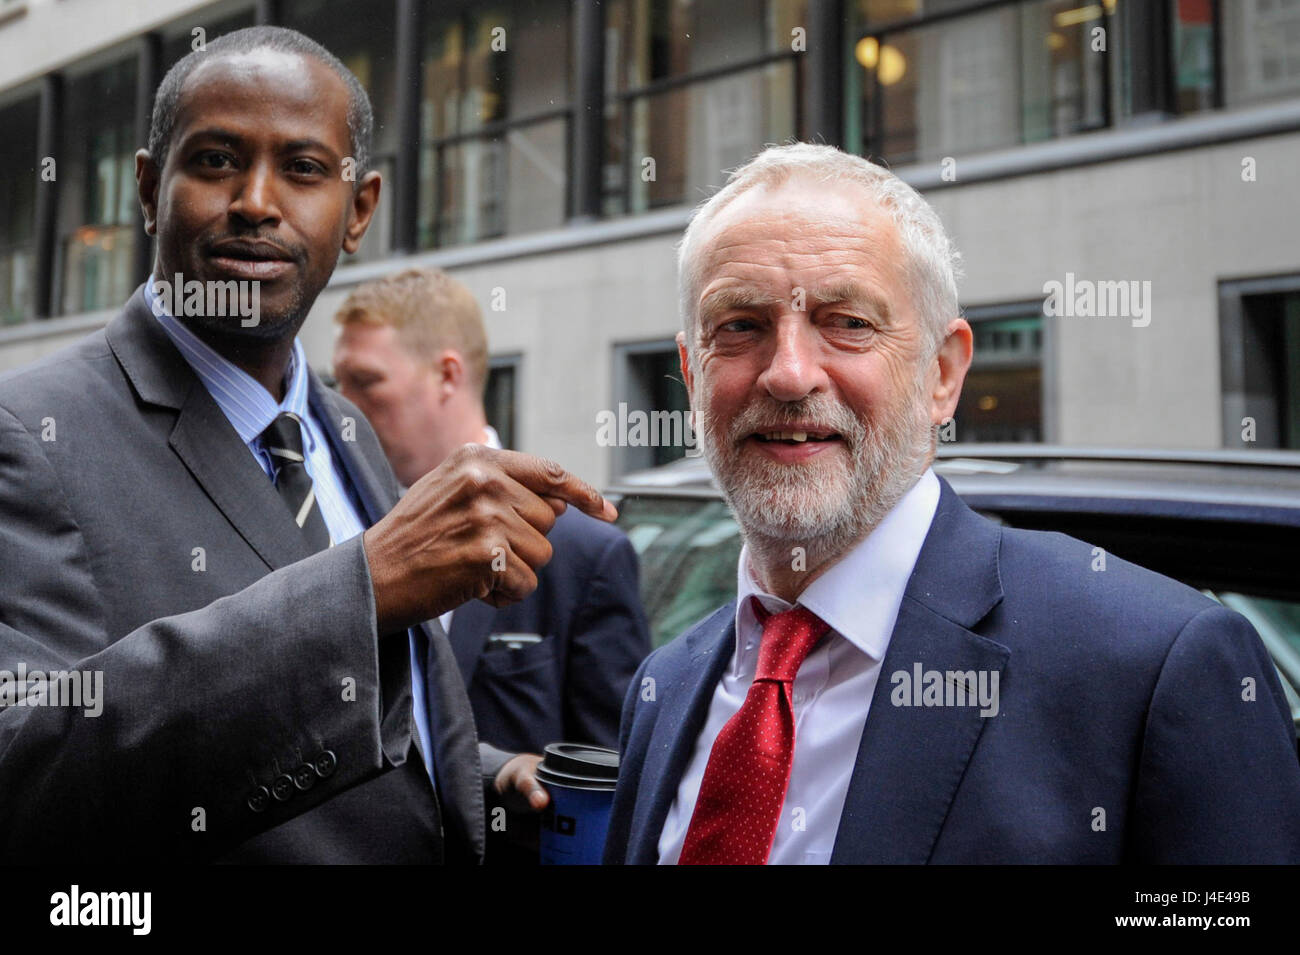 London, UK. 12th May, 2017. Jeremy Corbyn, leader of the Labour Party, arrives at Chatham House to give a speech Stock Photo